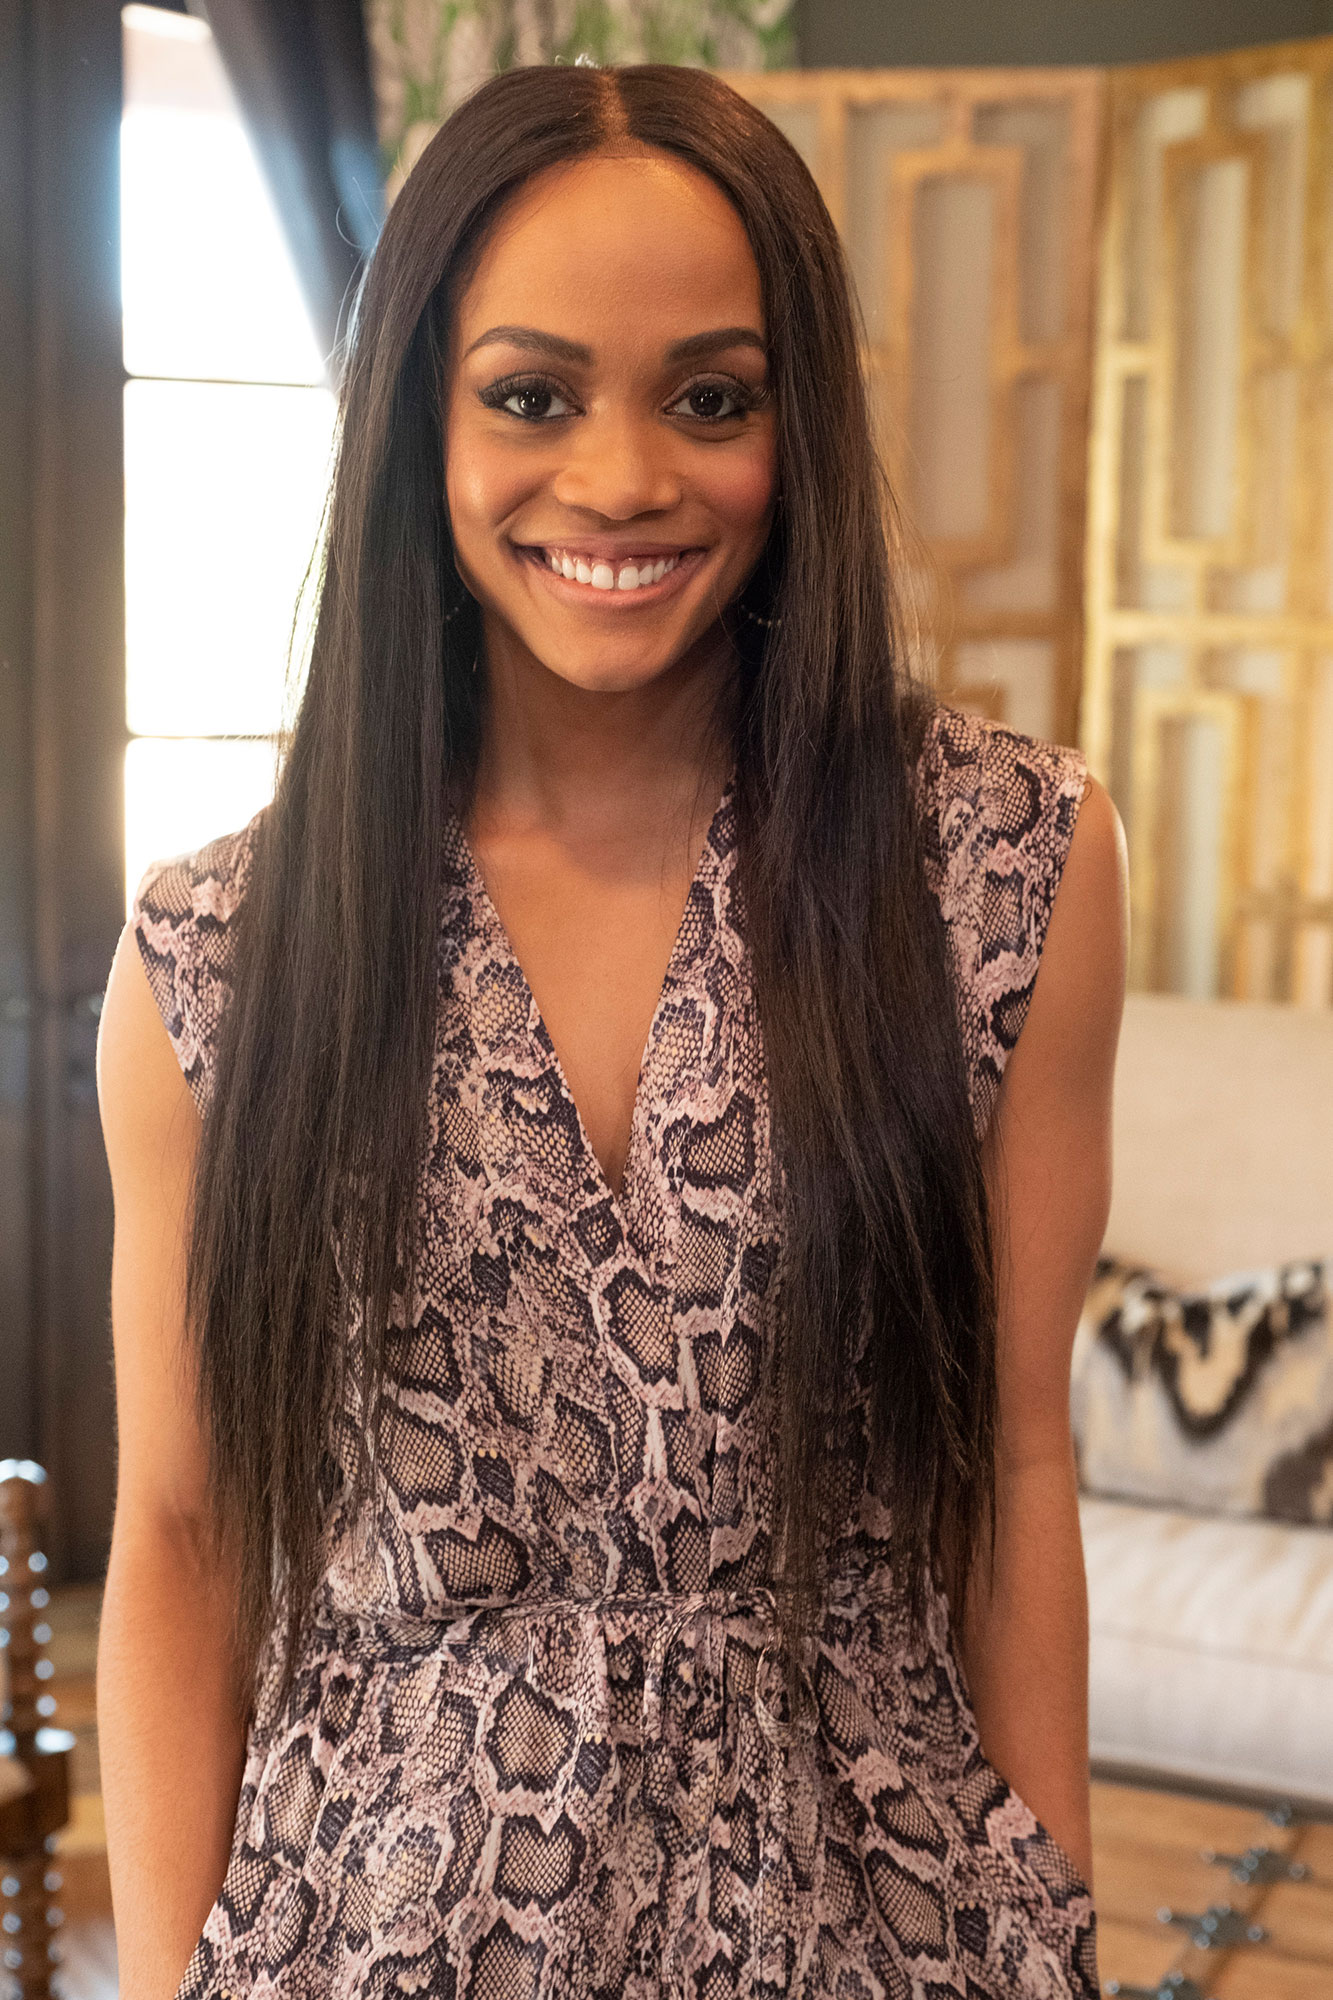 """Rachel Lindsay """"Bachelorette Reunion: The Biggest Bachelorette Reunion in Bachelor History Ever!"""" - Lindsay's wedding prep with fiancé Bryan Abasolo took center stage during the special. The twosome are set to tie the knot in the Caribbean in August and are ready to start a family."""